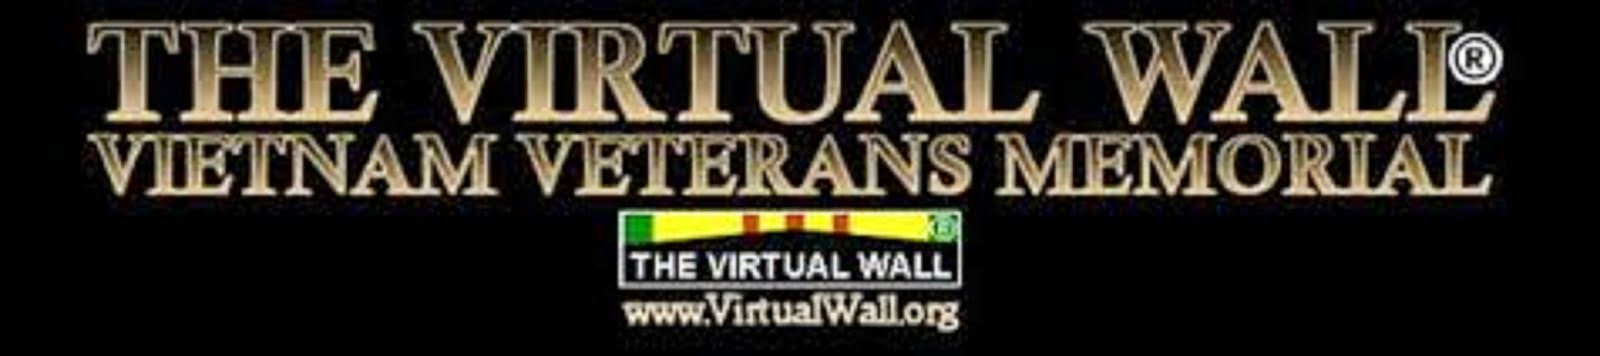 THE VIRTUAL WALL - VIETNAM VETERANS MEMORIAL